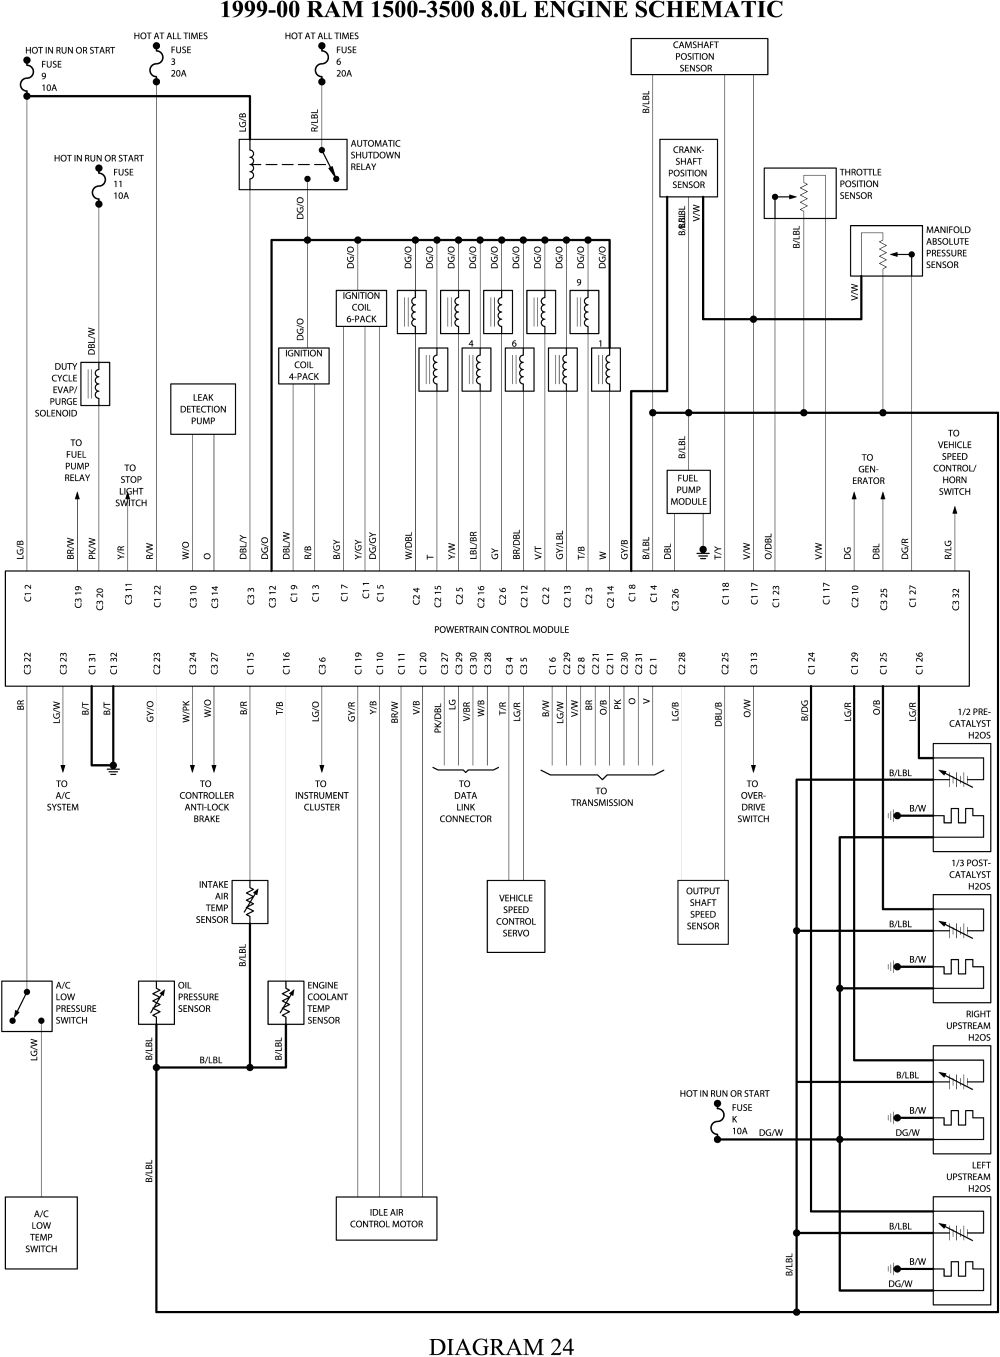 2002 Dodge Ram 1500 Wiring Diagram Free Wiring Diagram In 2020 Dodge Ram 1500 2001 Dodge Ram 1500 Dodge Ram